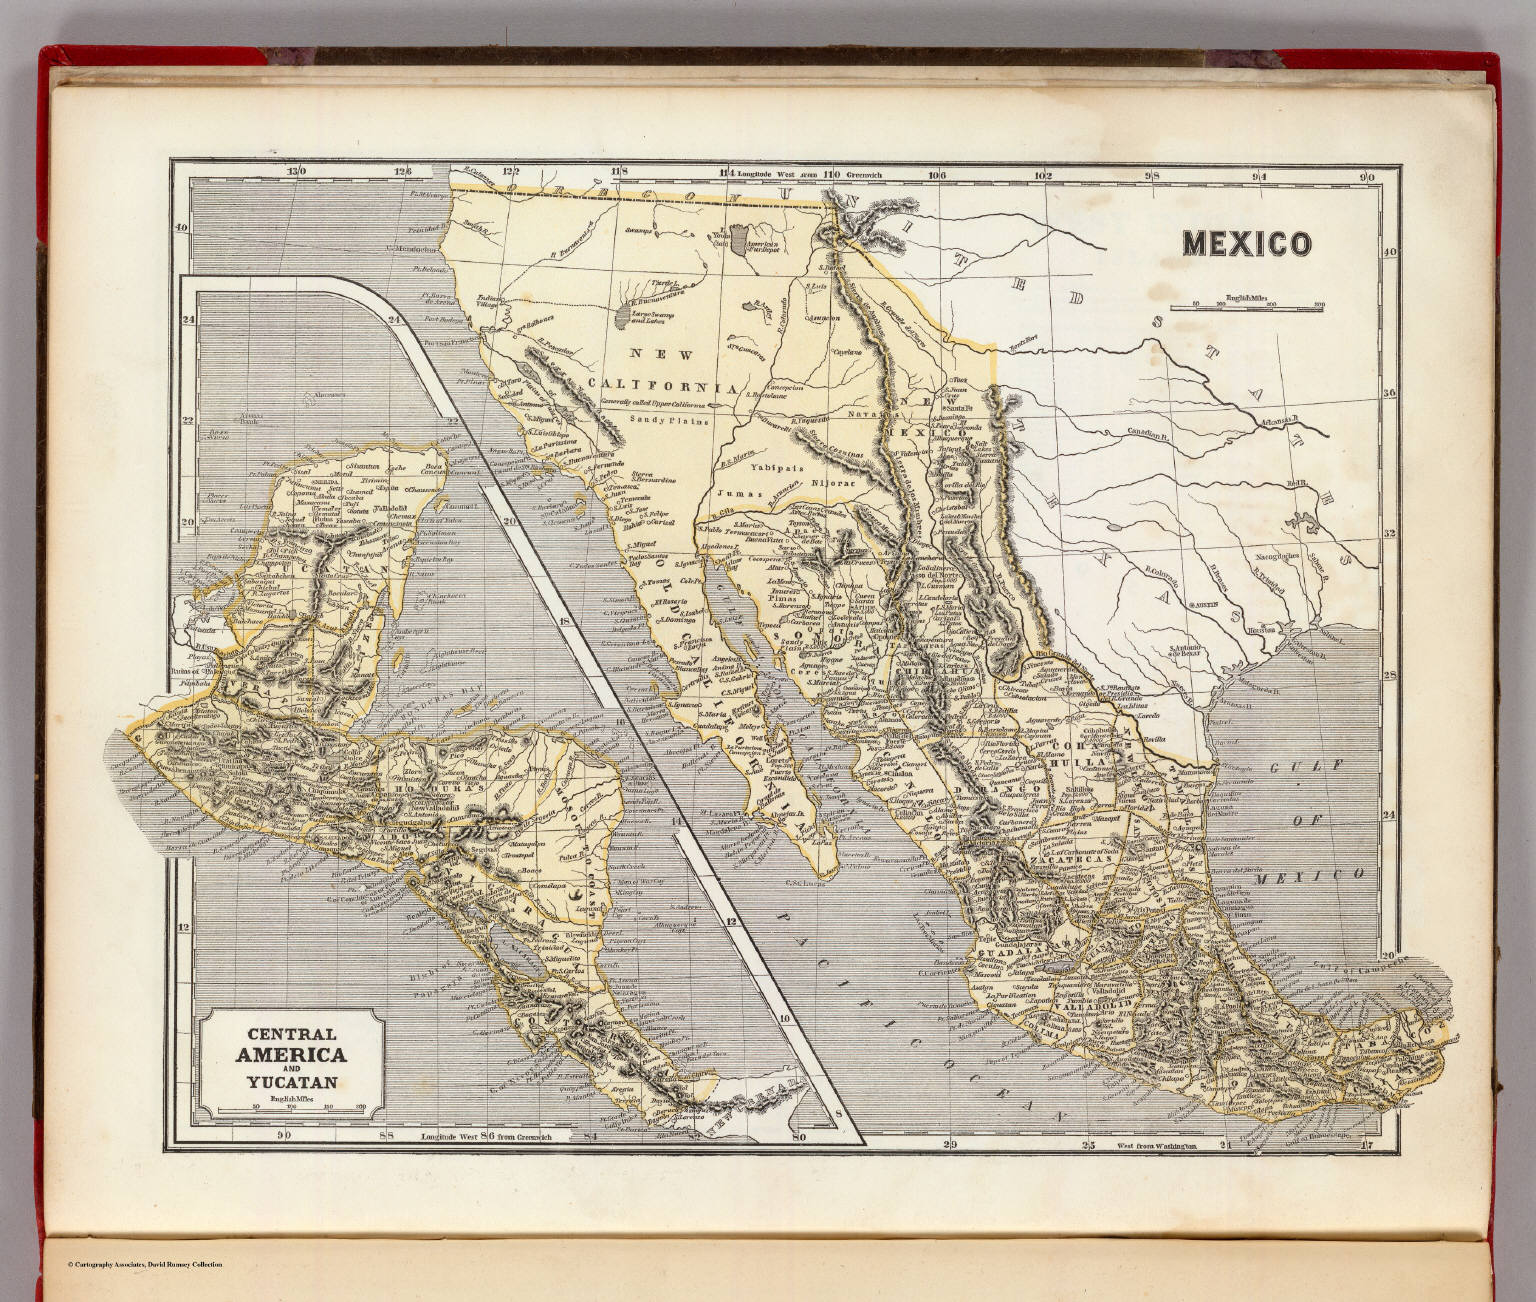 Mexico Map 1794.Mexico Central America David Rumsey Historical Map Collection